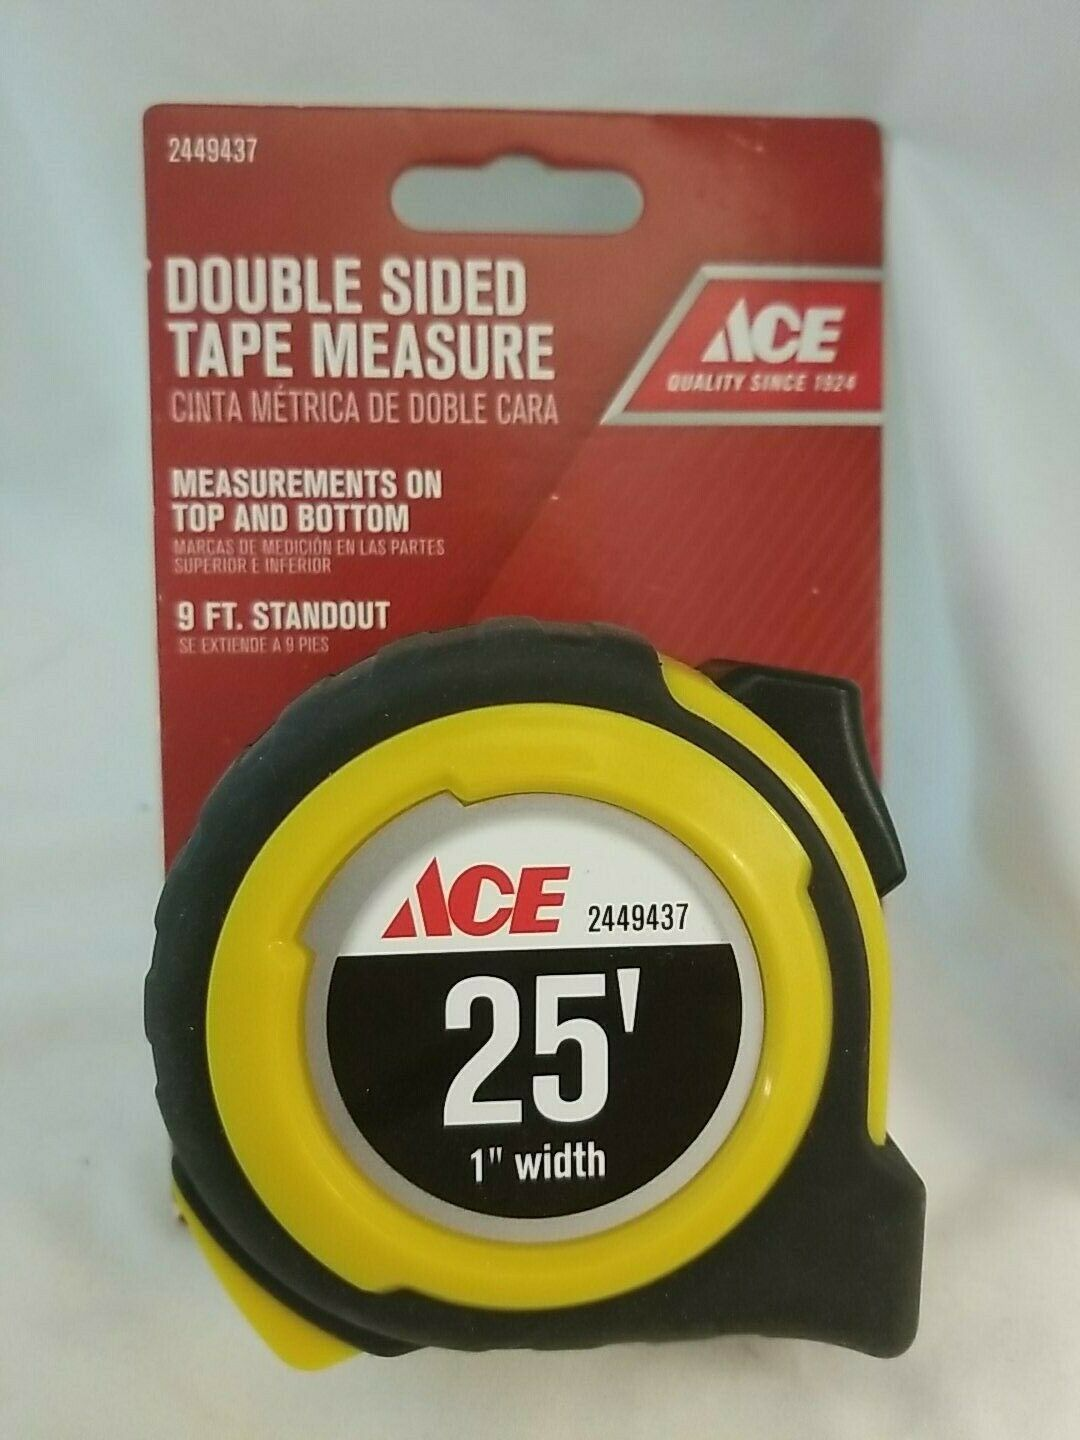 Primary image for Ace 25' Double Sided Tape Measure 2449437